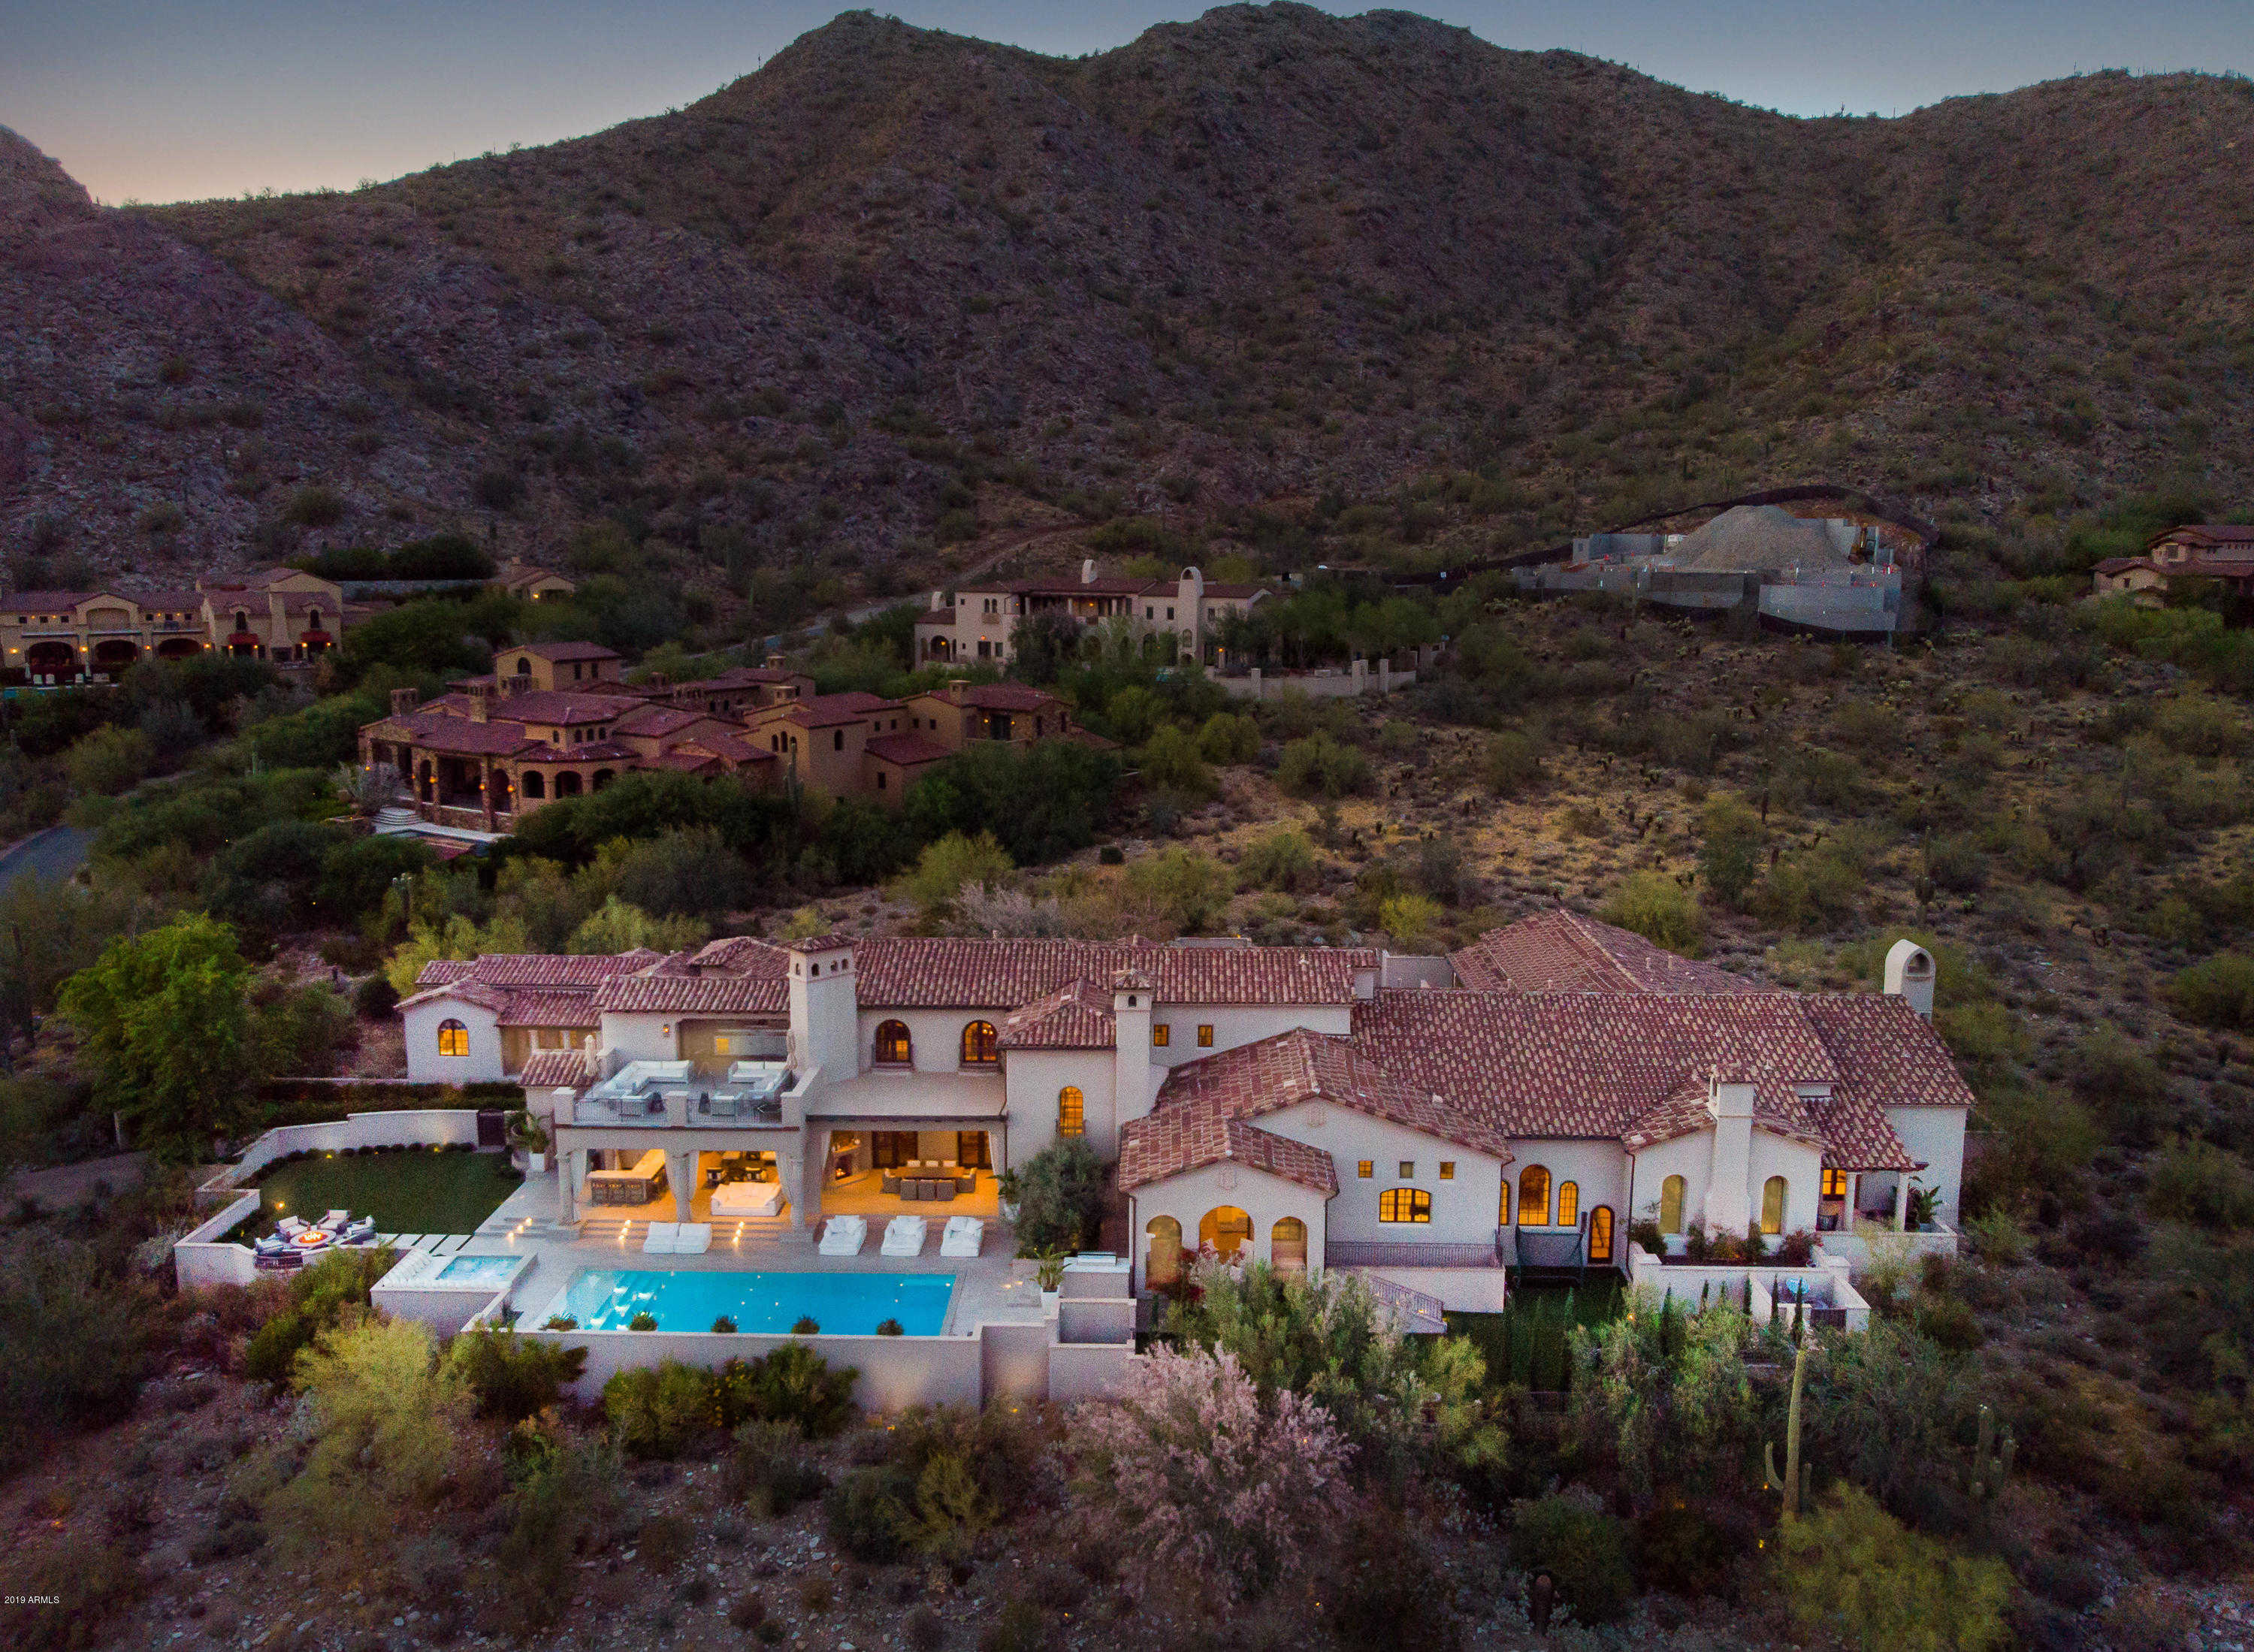 $7,750,000 - 6Br/7Ba - Home for Sale in Silverleaf At Dc Ranch Parcel 6.2, Scottsdale